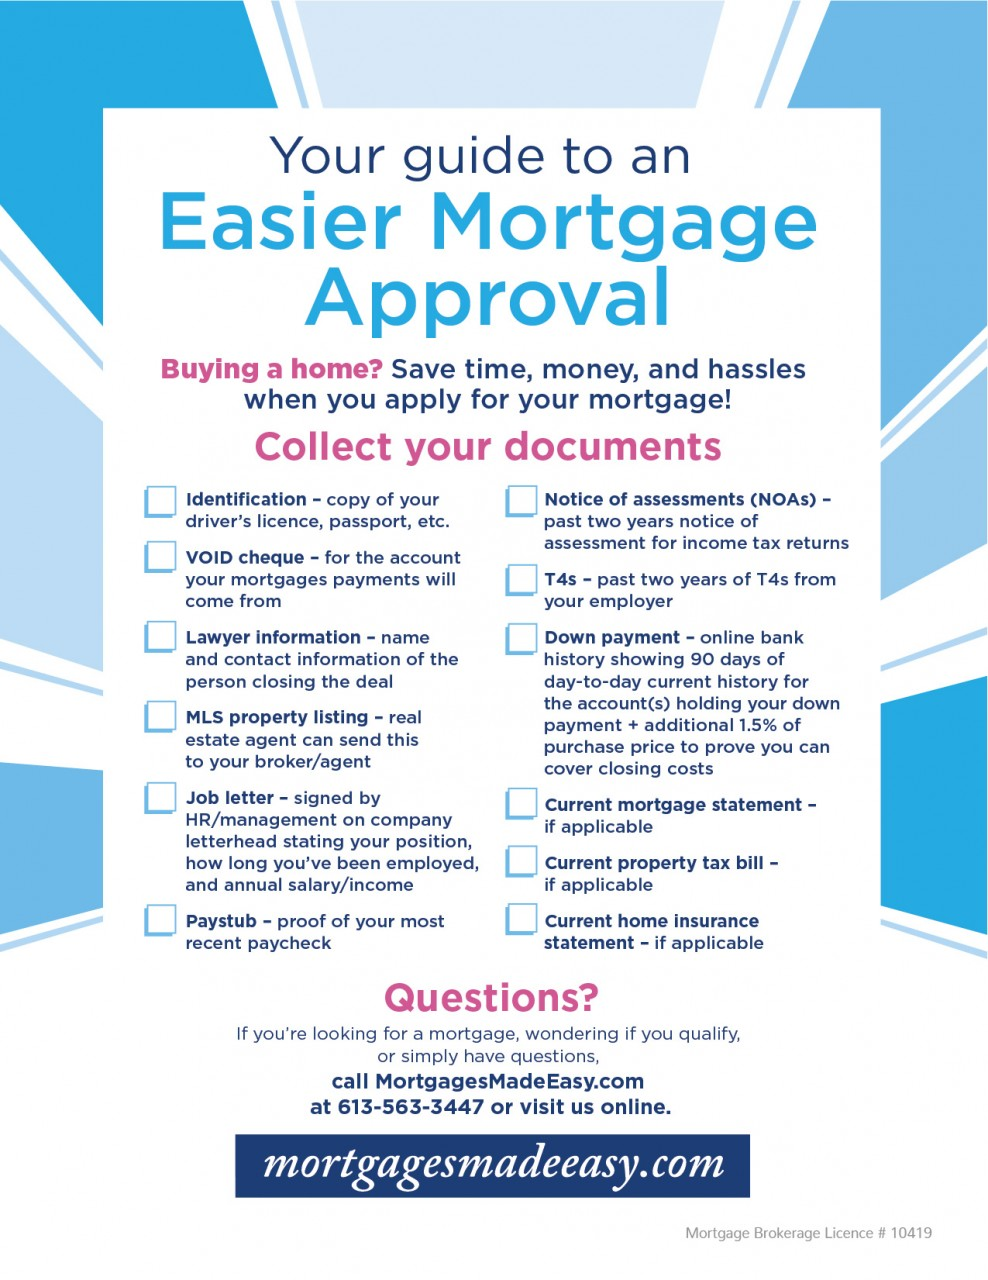 Your Guide To An Easier Mortgage Approval Ottawa Carleton Mortgage Inc Blog Mortgage Advice Tips